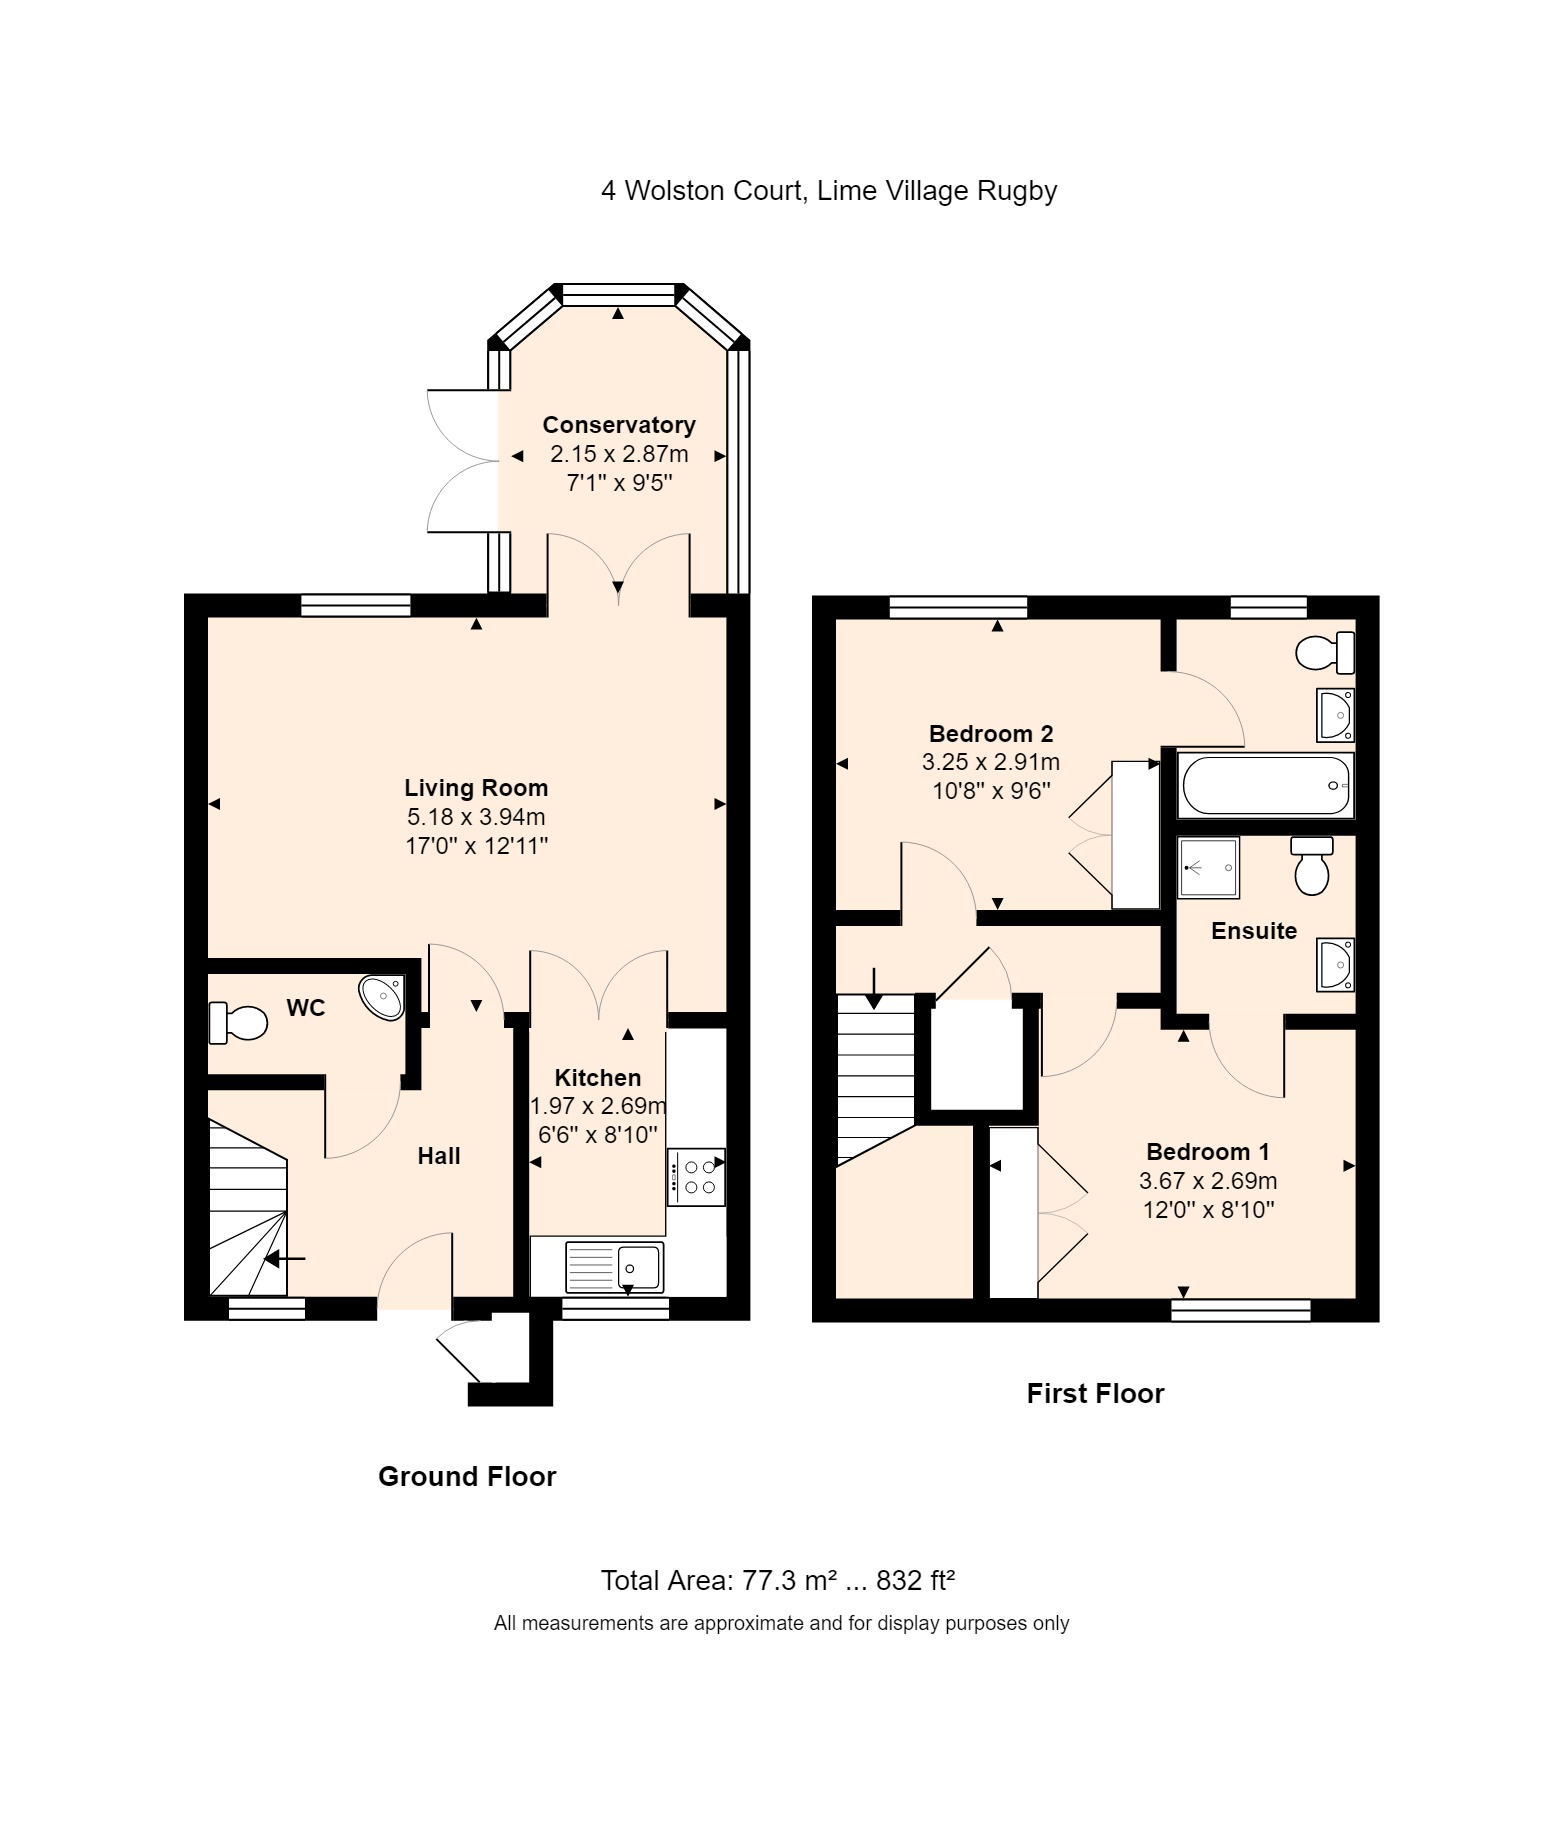 4 Wolston Court Floorplan